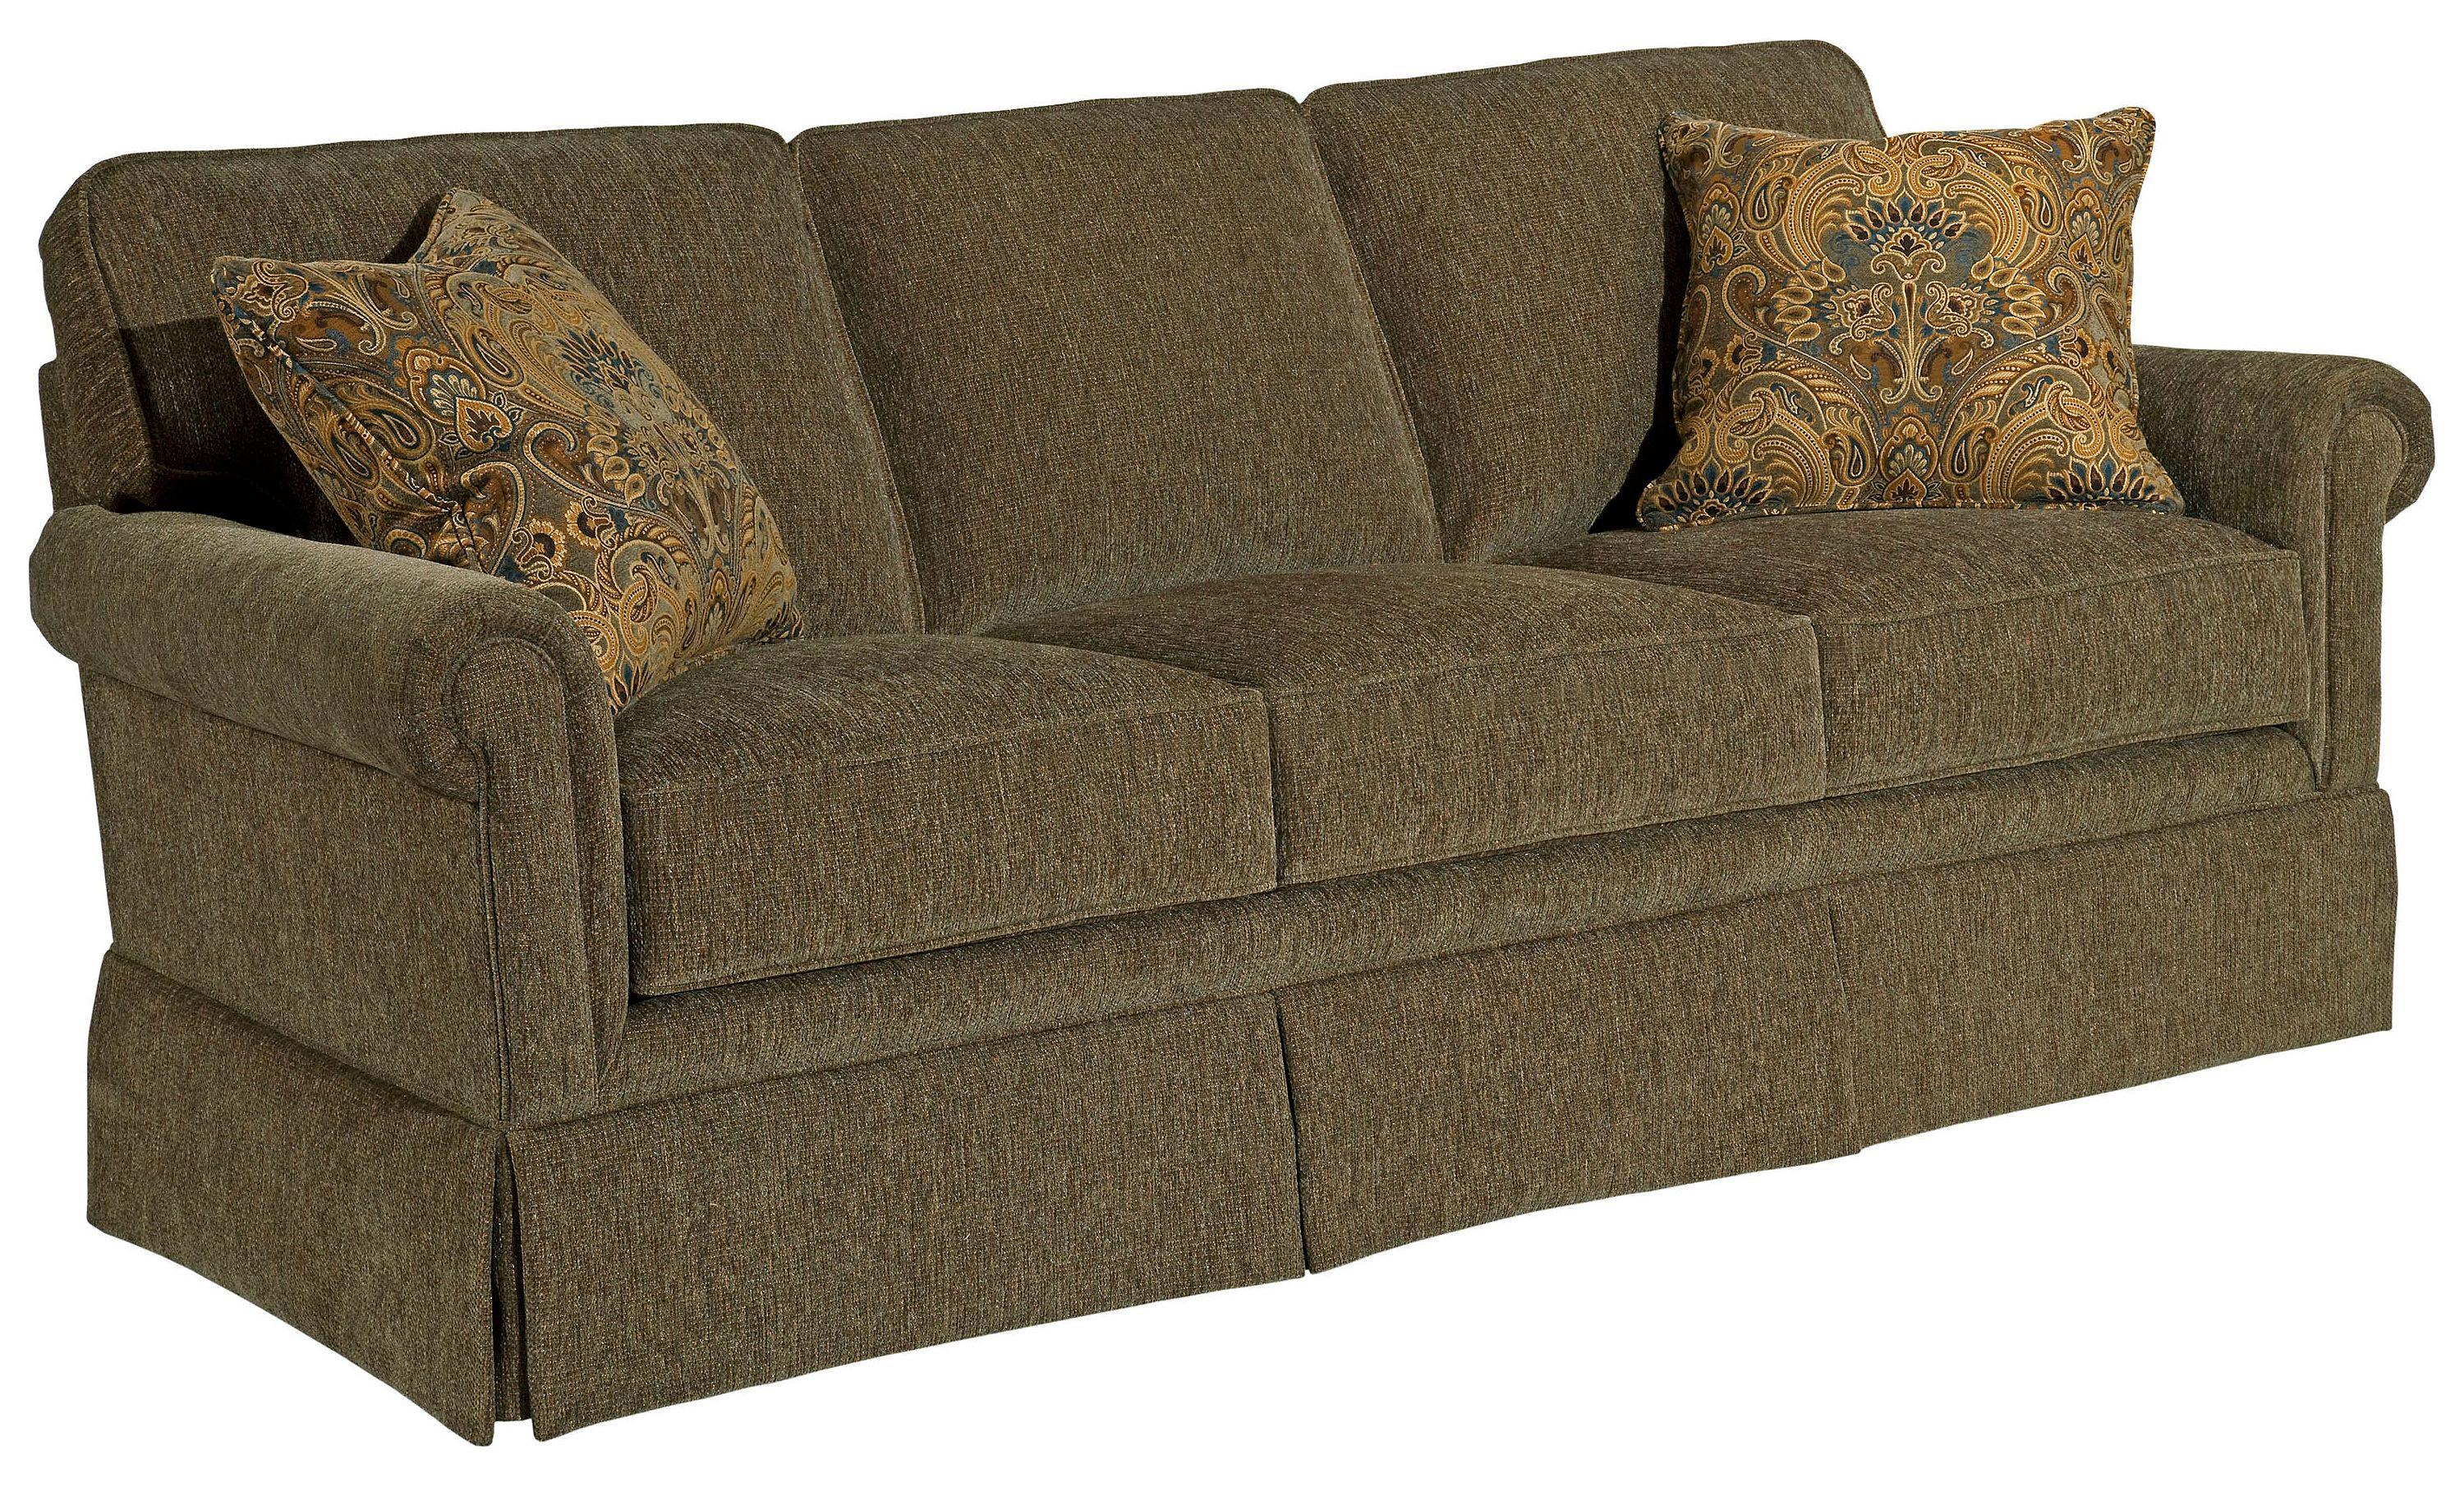 Broyhill Furniture Audrey AirDream™ Sofa Sleeper, Queen - Item Number: 3762-7A